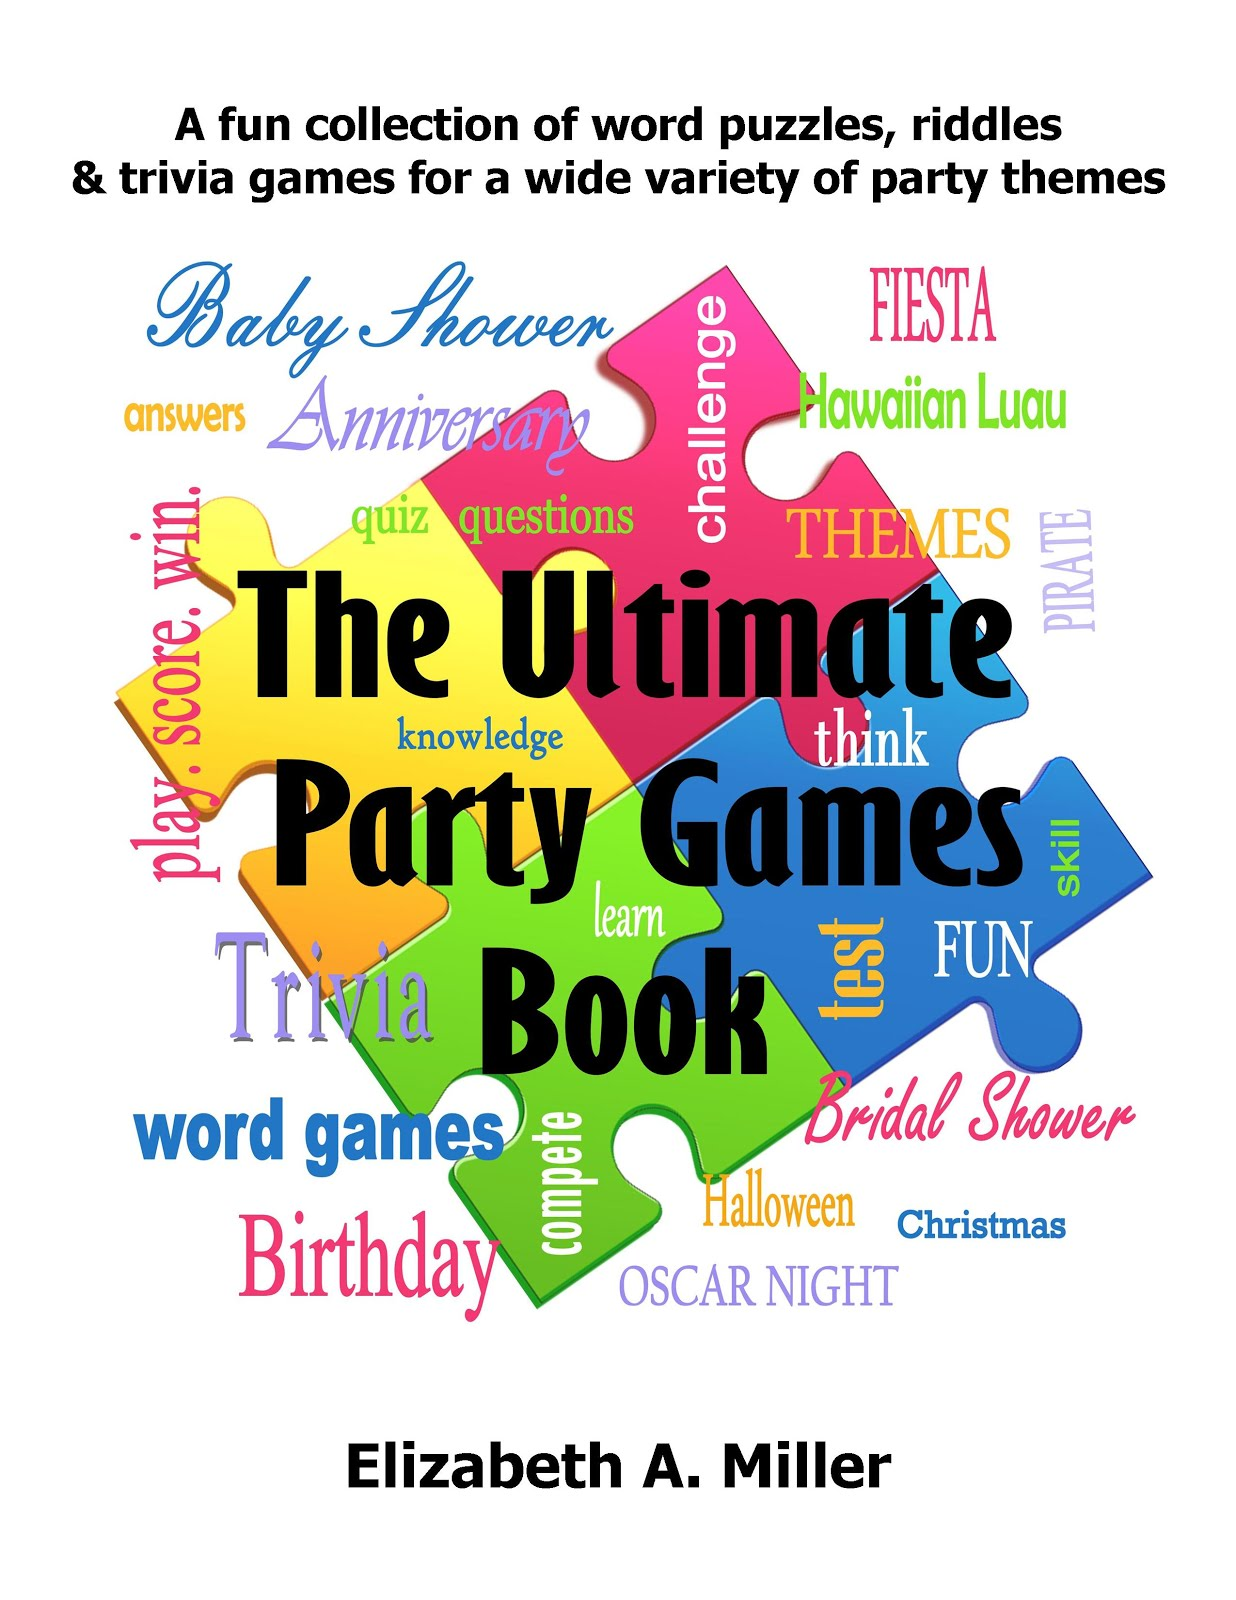 The Ultimate Party Games Book